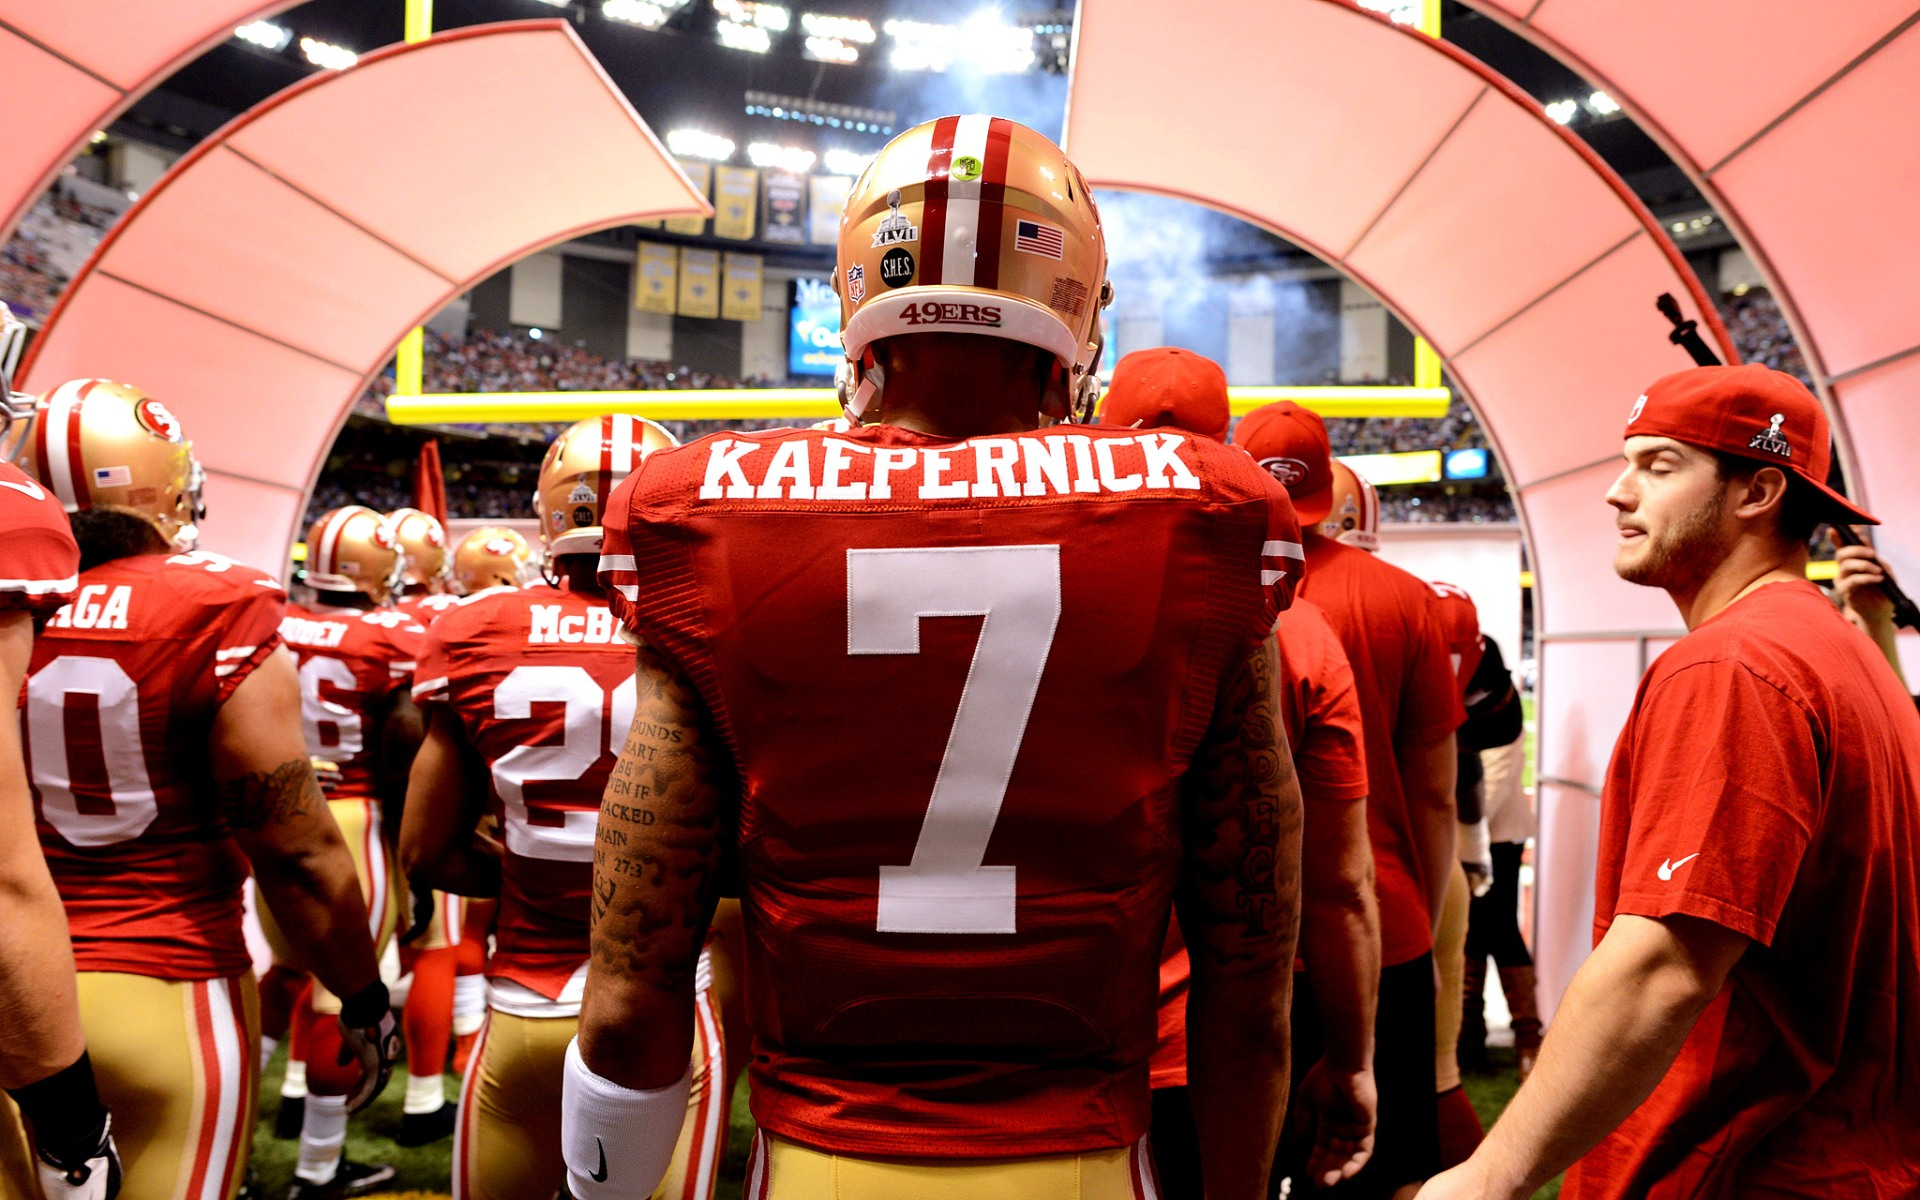 2caff830d Retired Police Officer Posts Open Letter to Kaepernick – Cleat Geeks